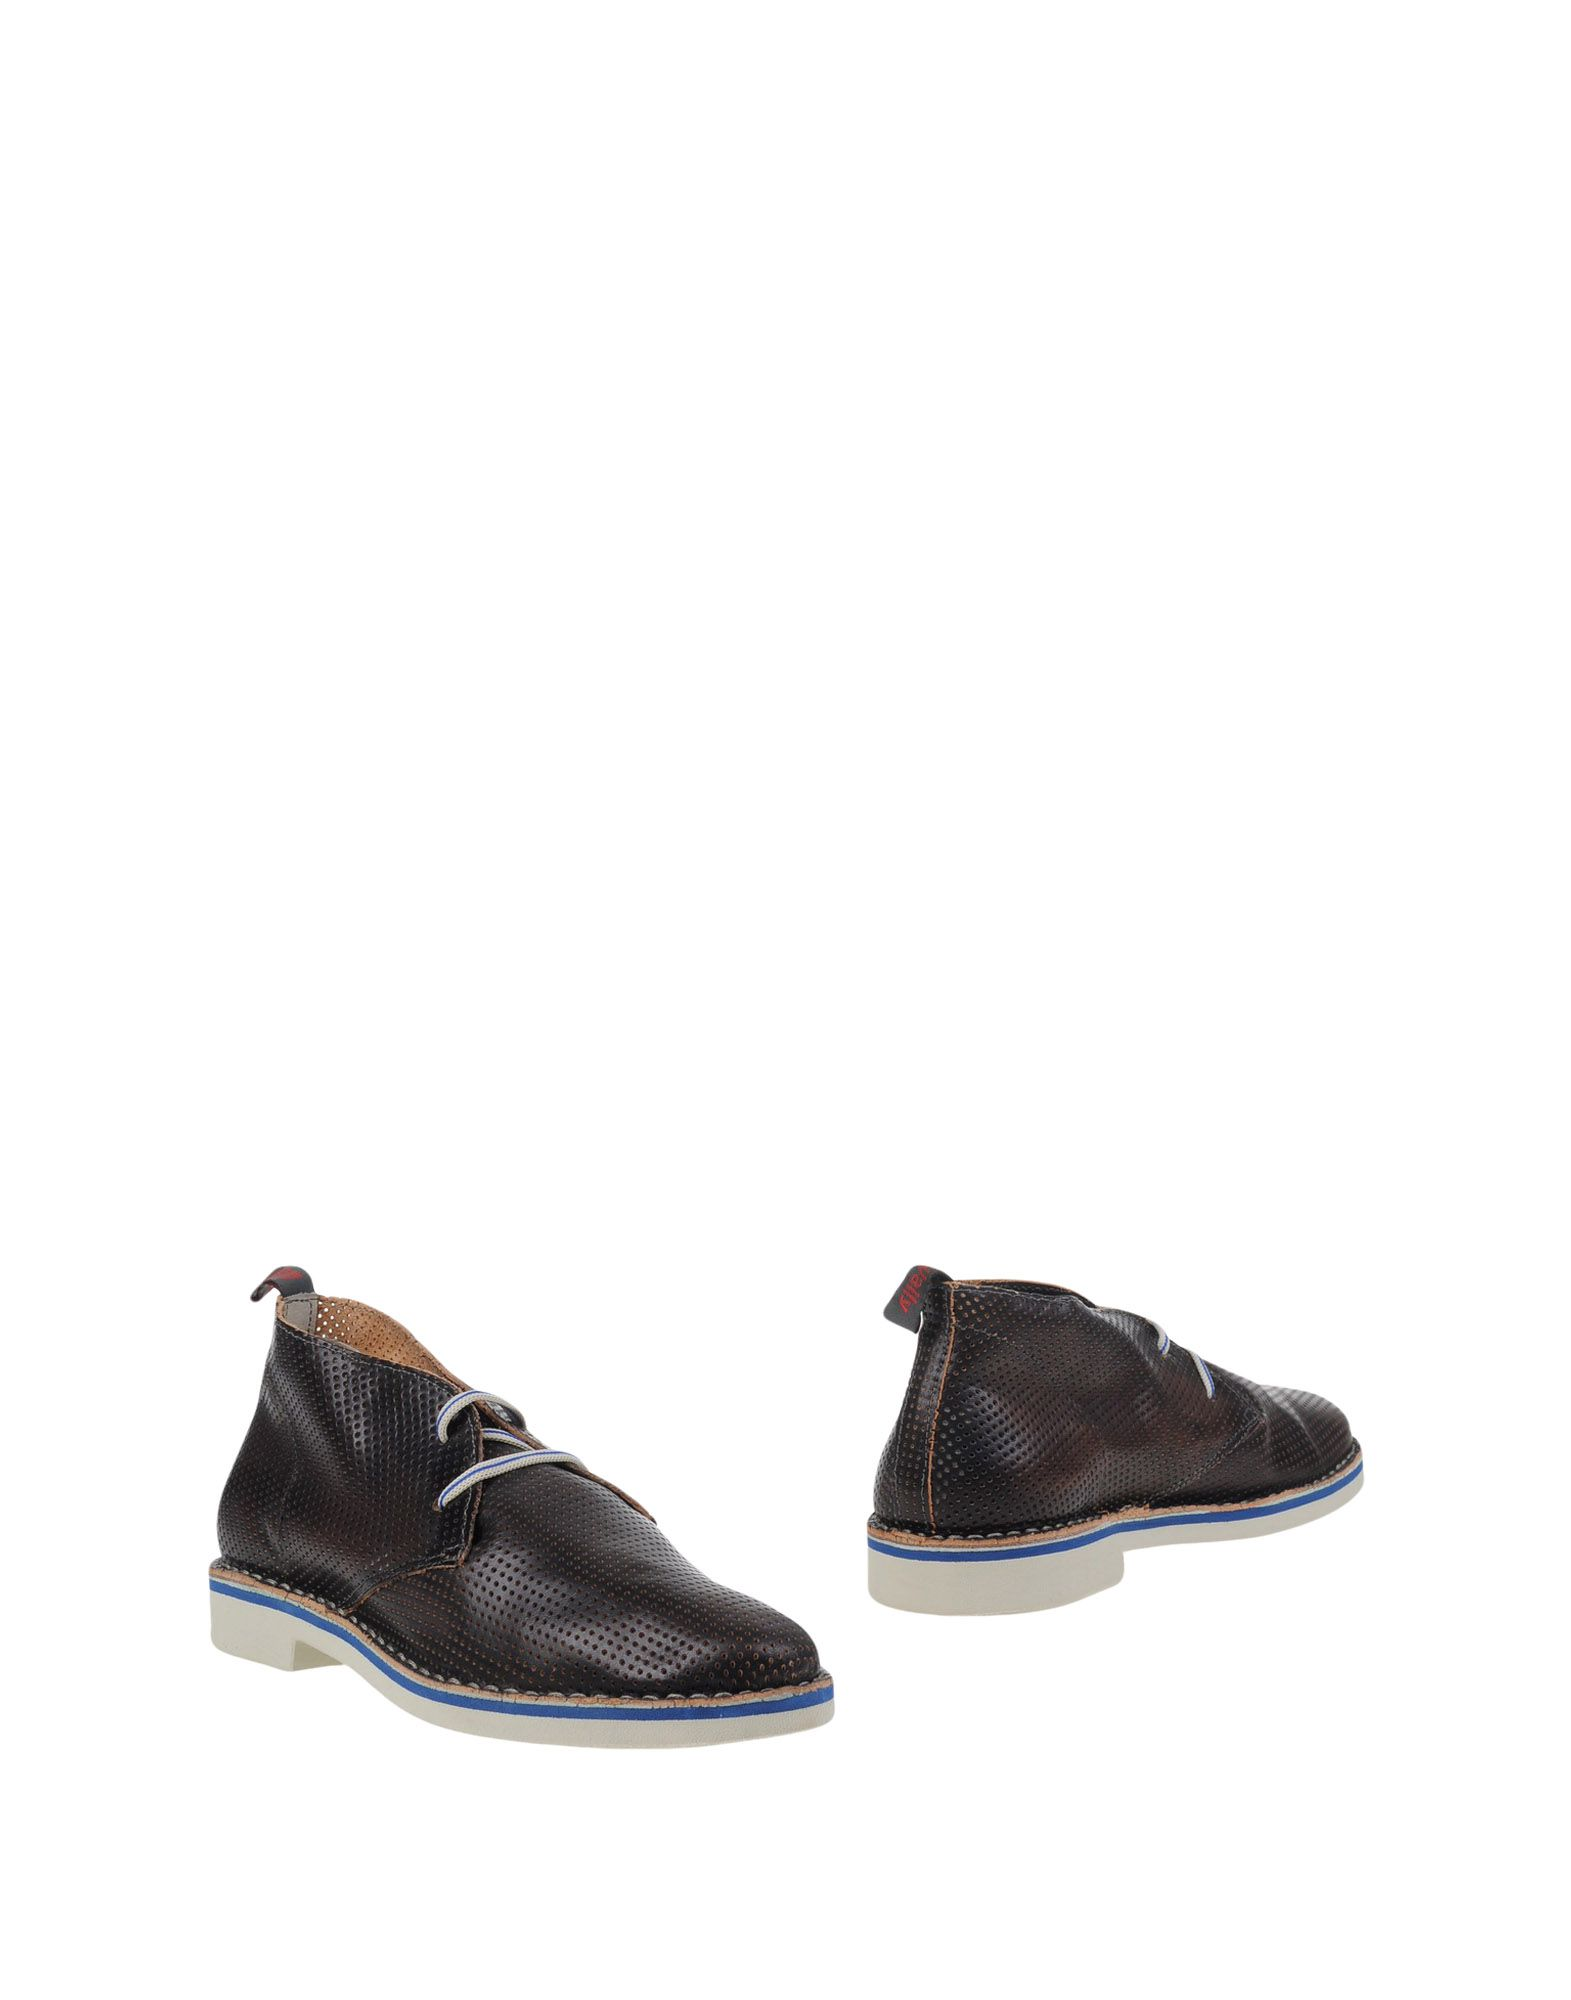 Bottine Wally Walker Homme - Bottines Wally Walker sur